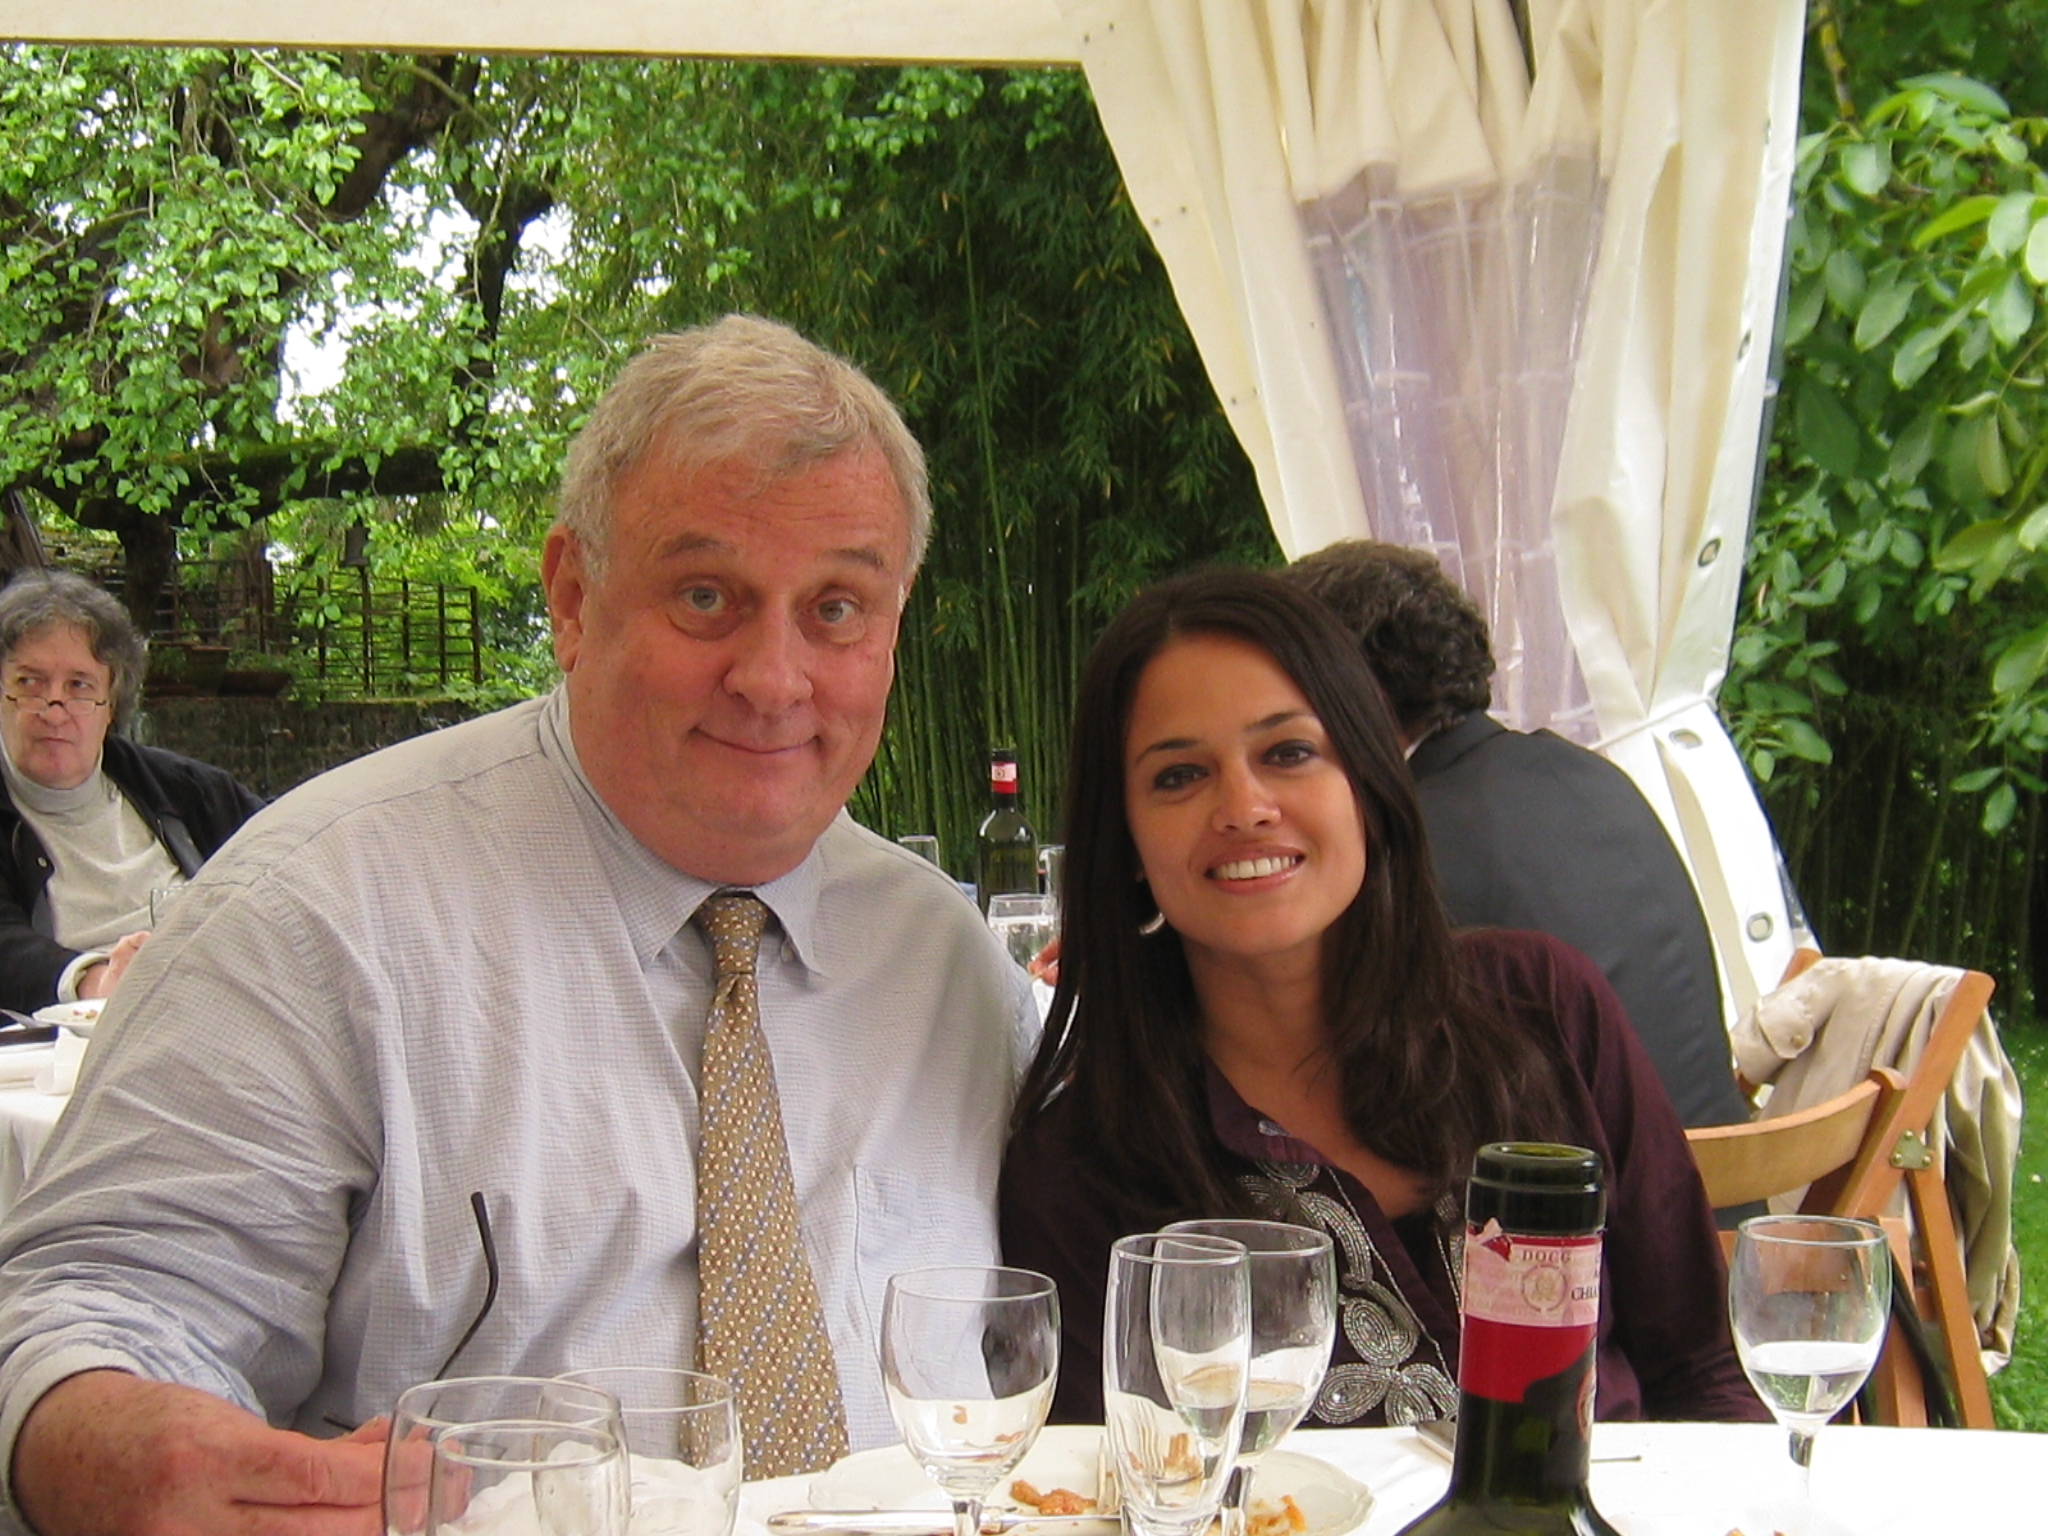 Edmund White and Tishani Doshi